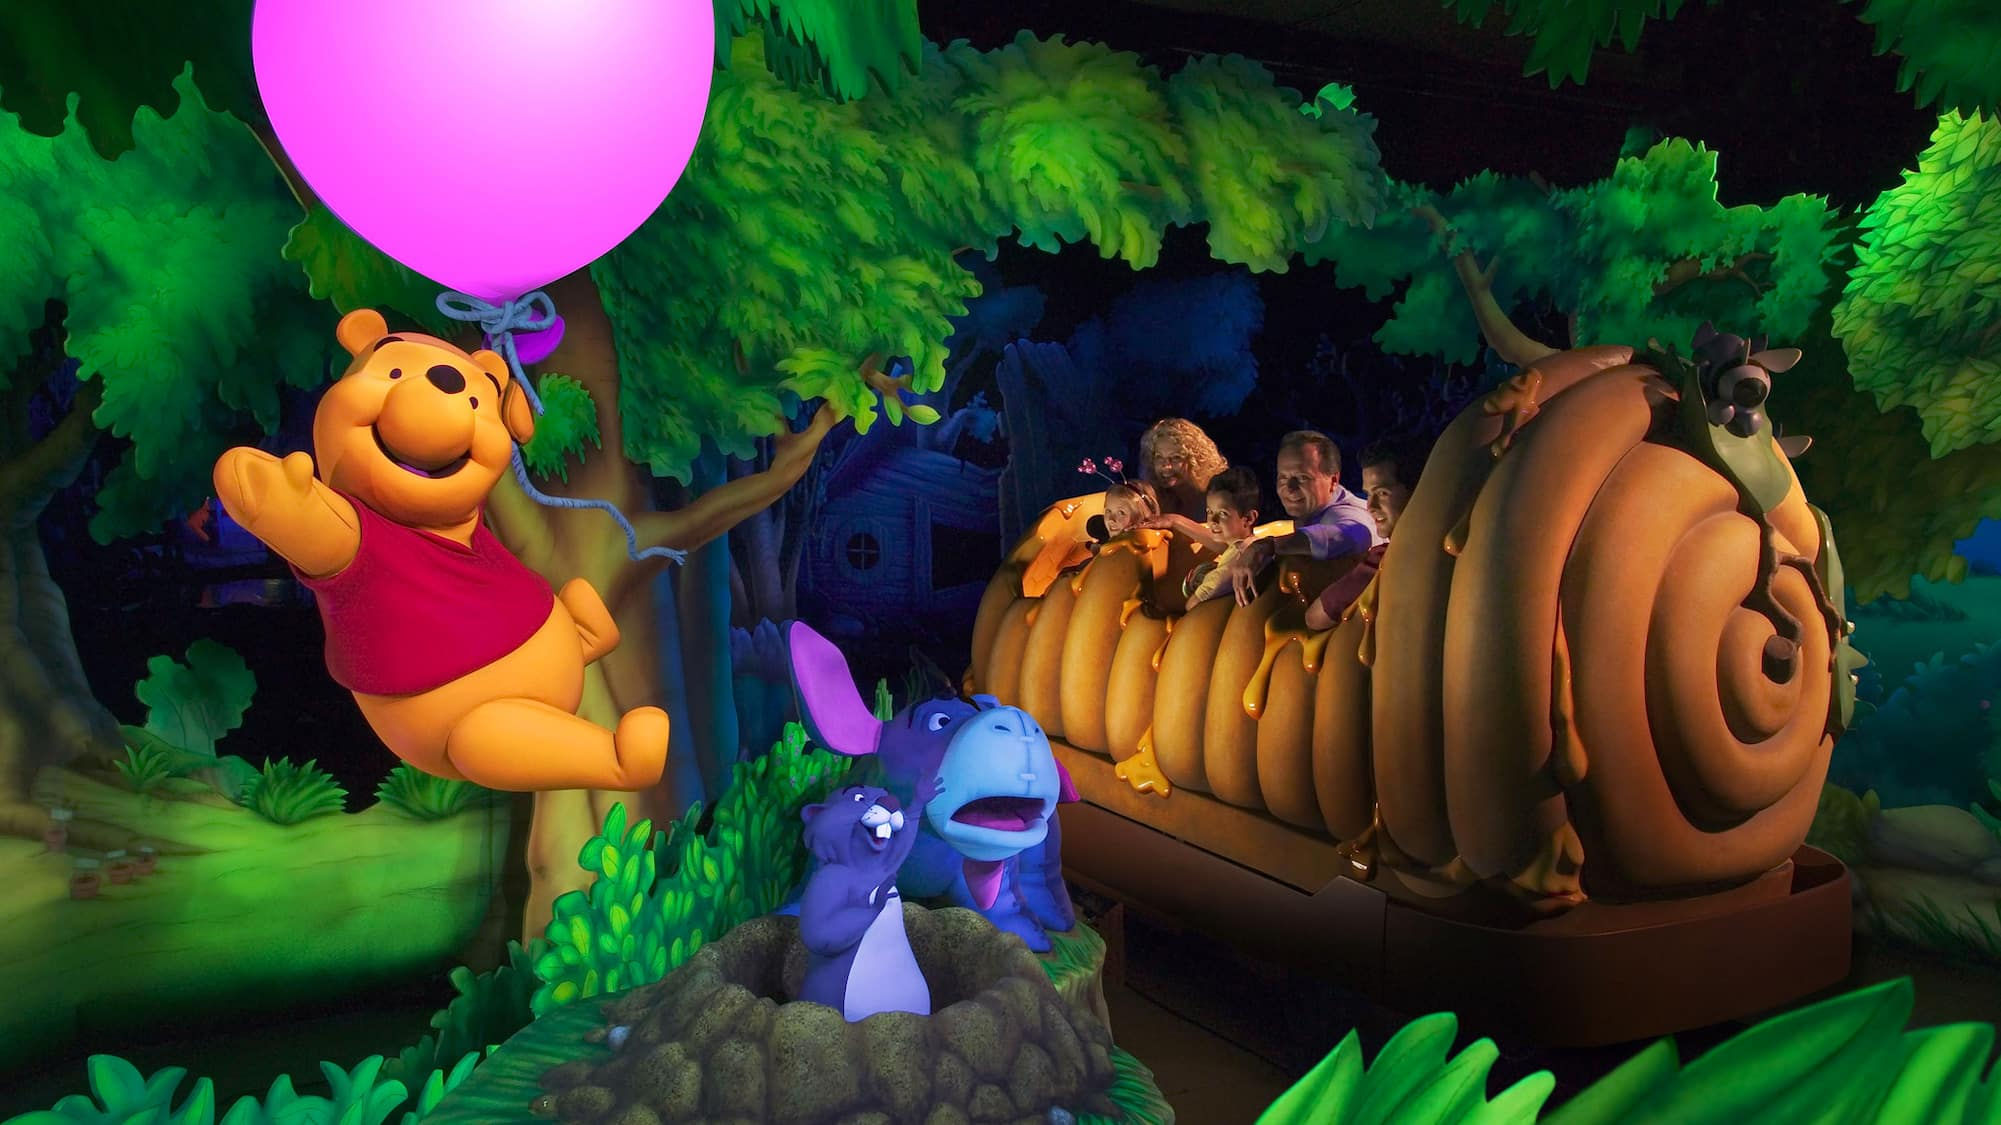 Pooh Bear floats with a balloon above Eeyore and Gopher while Guests travel in a giant honey pot